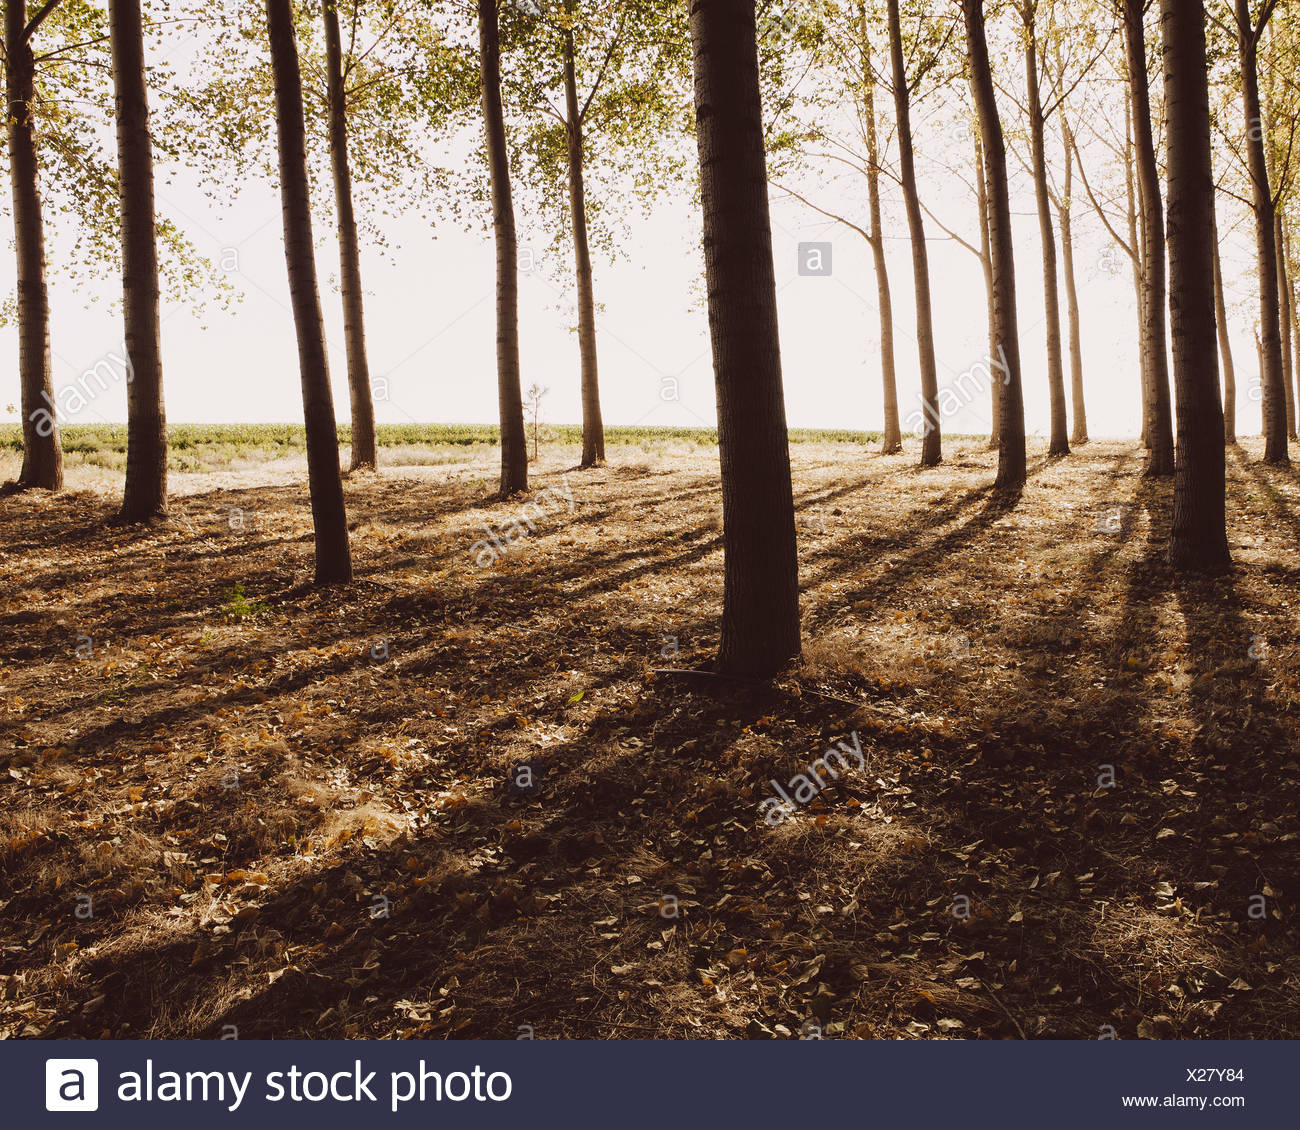 Cottonwood trees planted in ordered rows casting long shadows on the ground Commercial arboriculture a tree nursery or farm - Stock Image